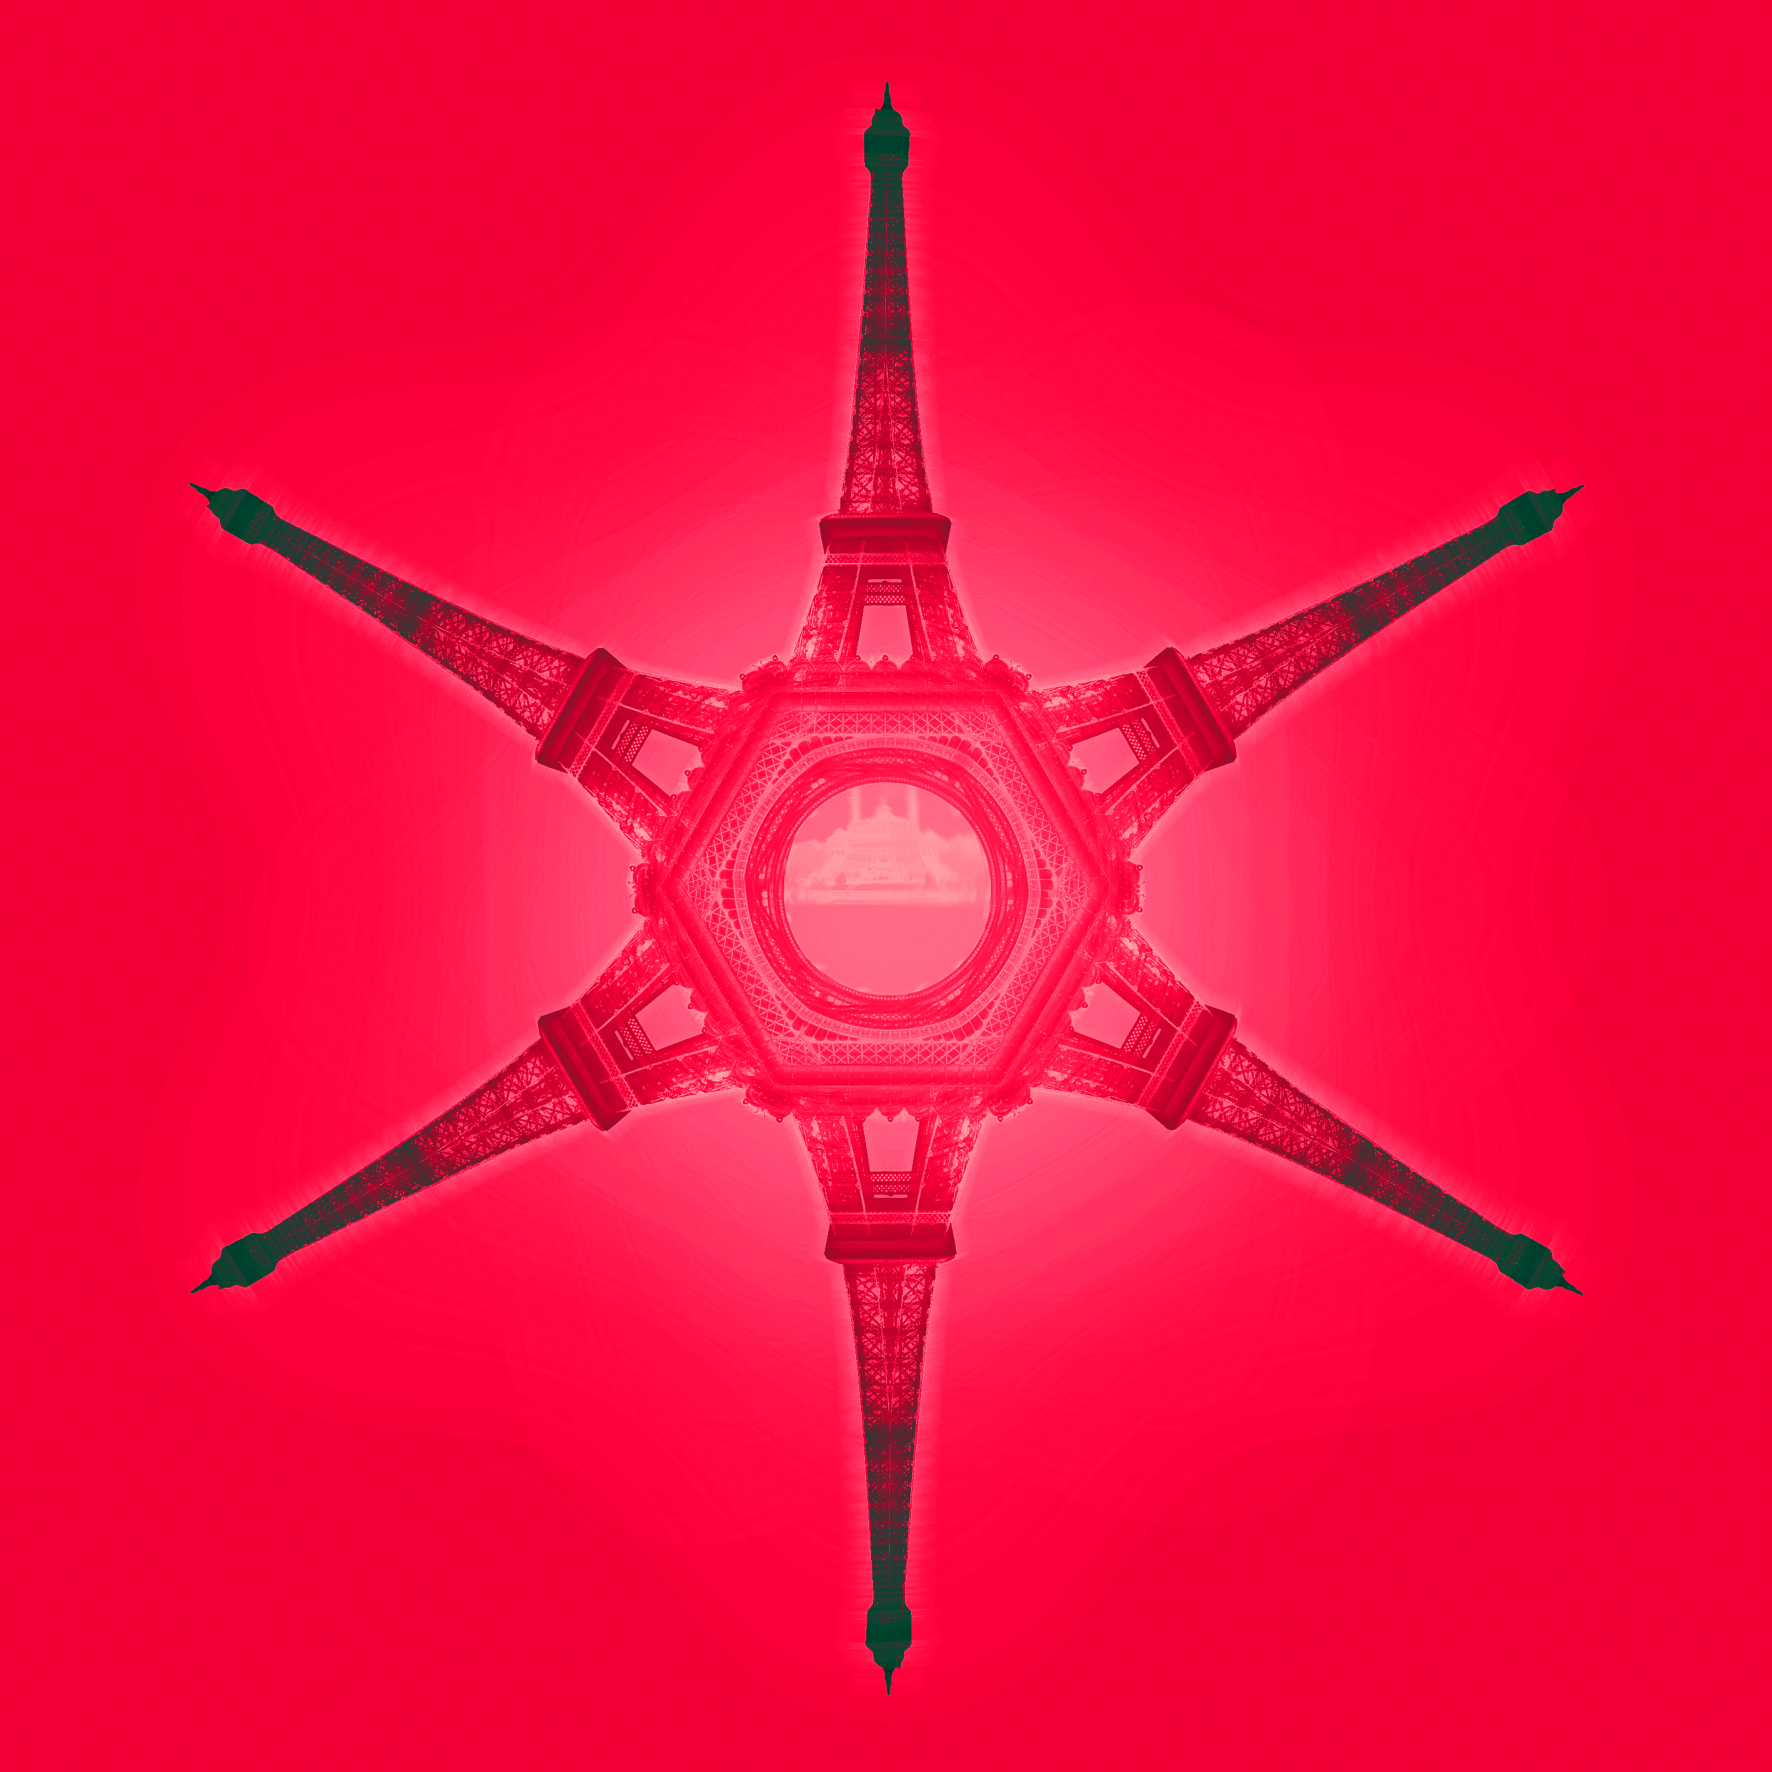 Oh là là. Pink Paris snowflake from Eiffel Tower. Dougie Scott